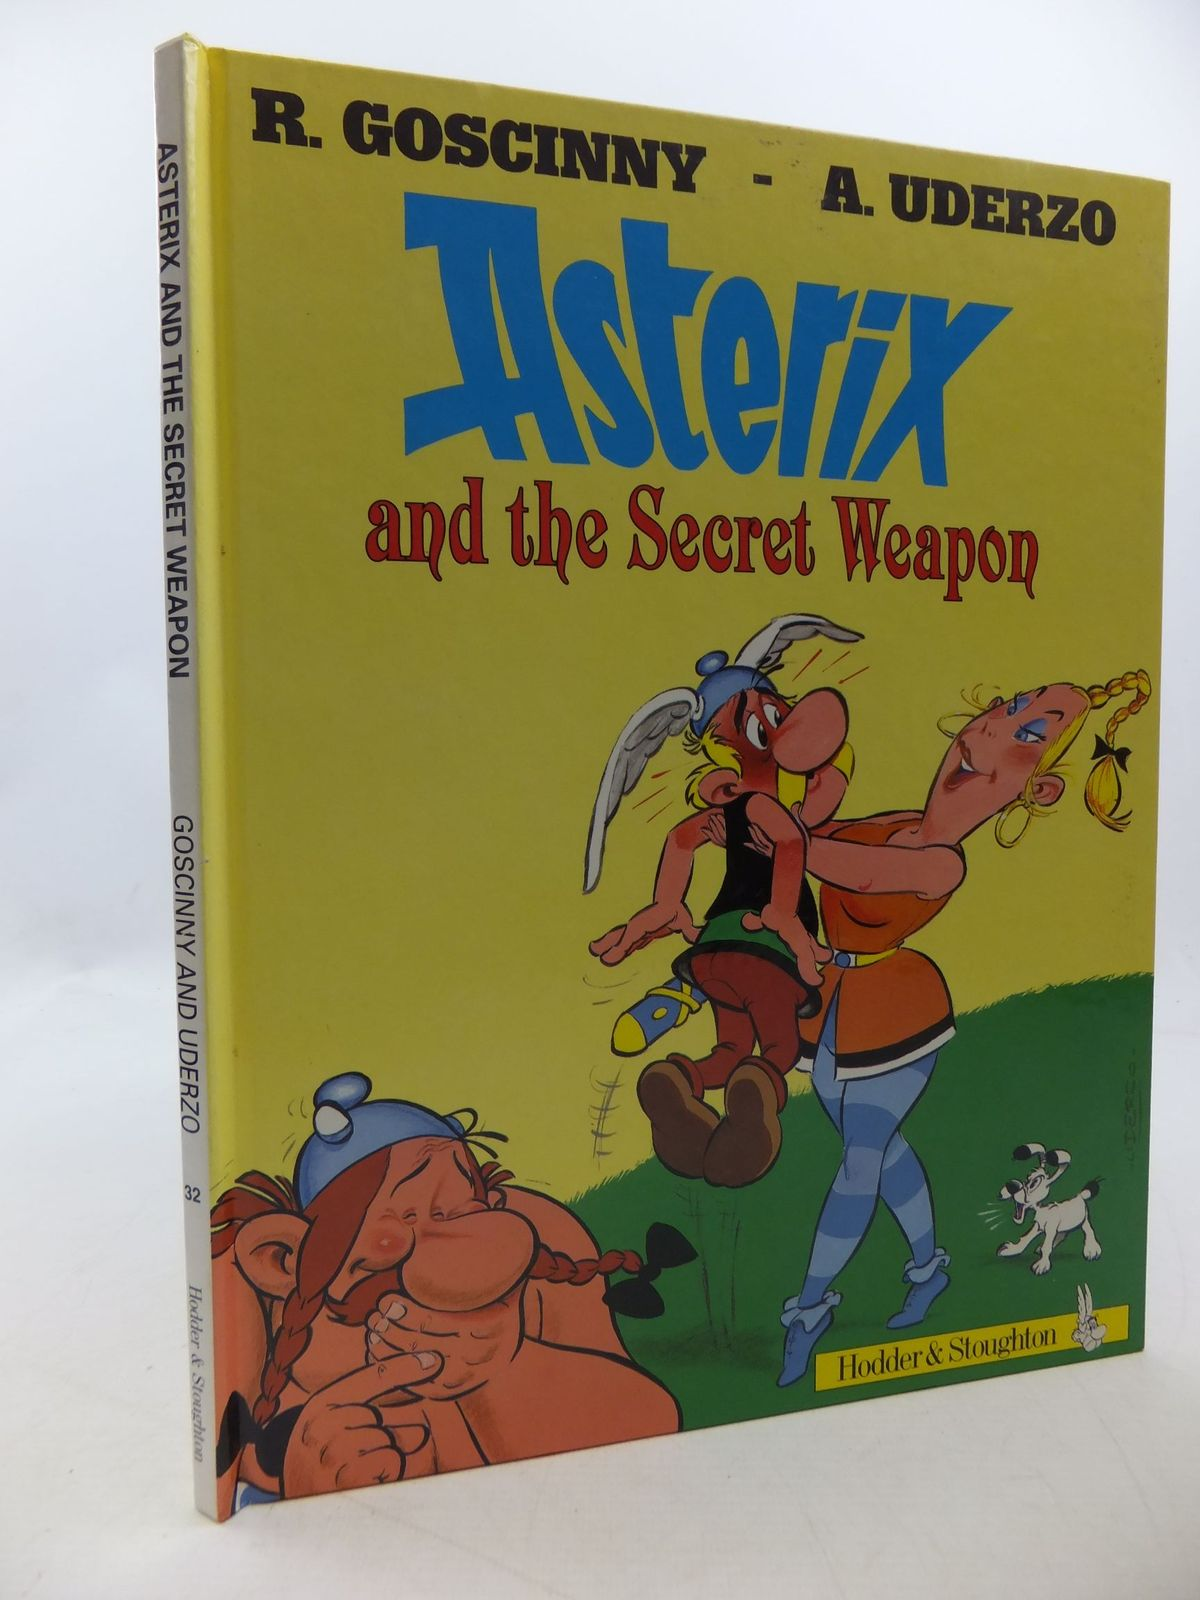 Photo of ASTERIX AND THE SECRET WEAPON written by Goscinny, Rene illustrated by Uderzo, Albert published by Hodder & Stoughton (STOCK CODE: 1207857)  for sale by Stella & Rose's Books